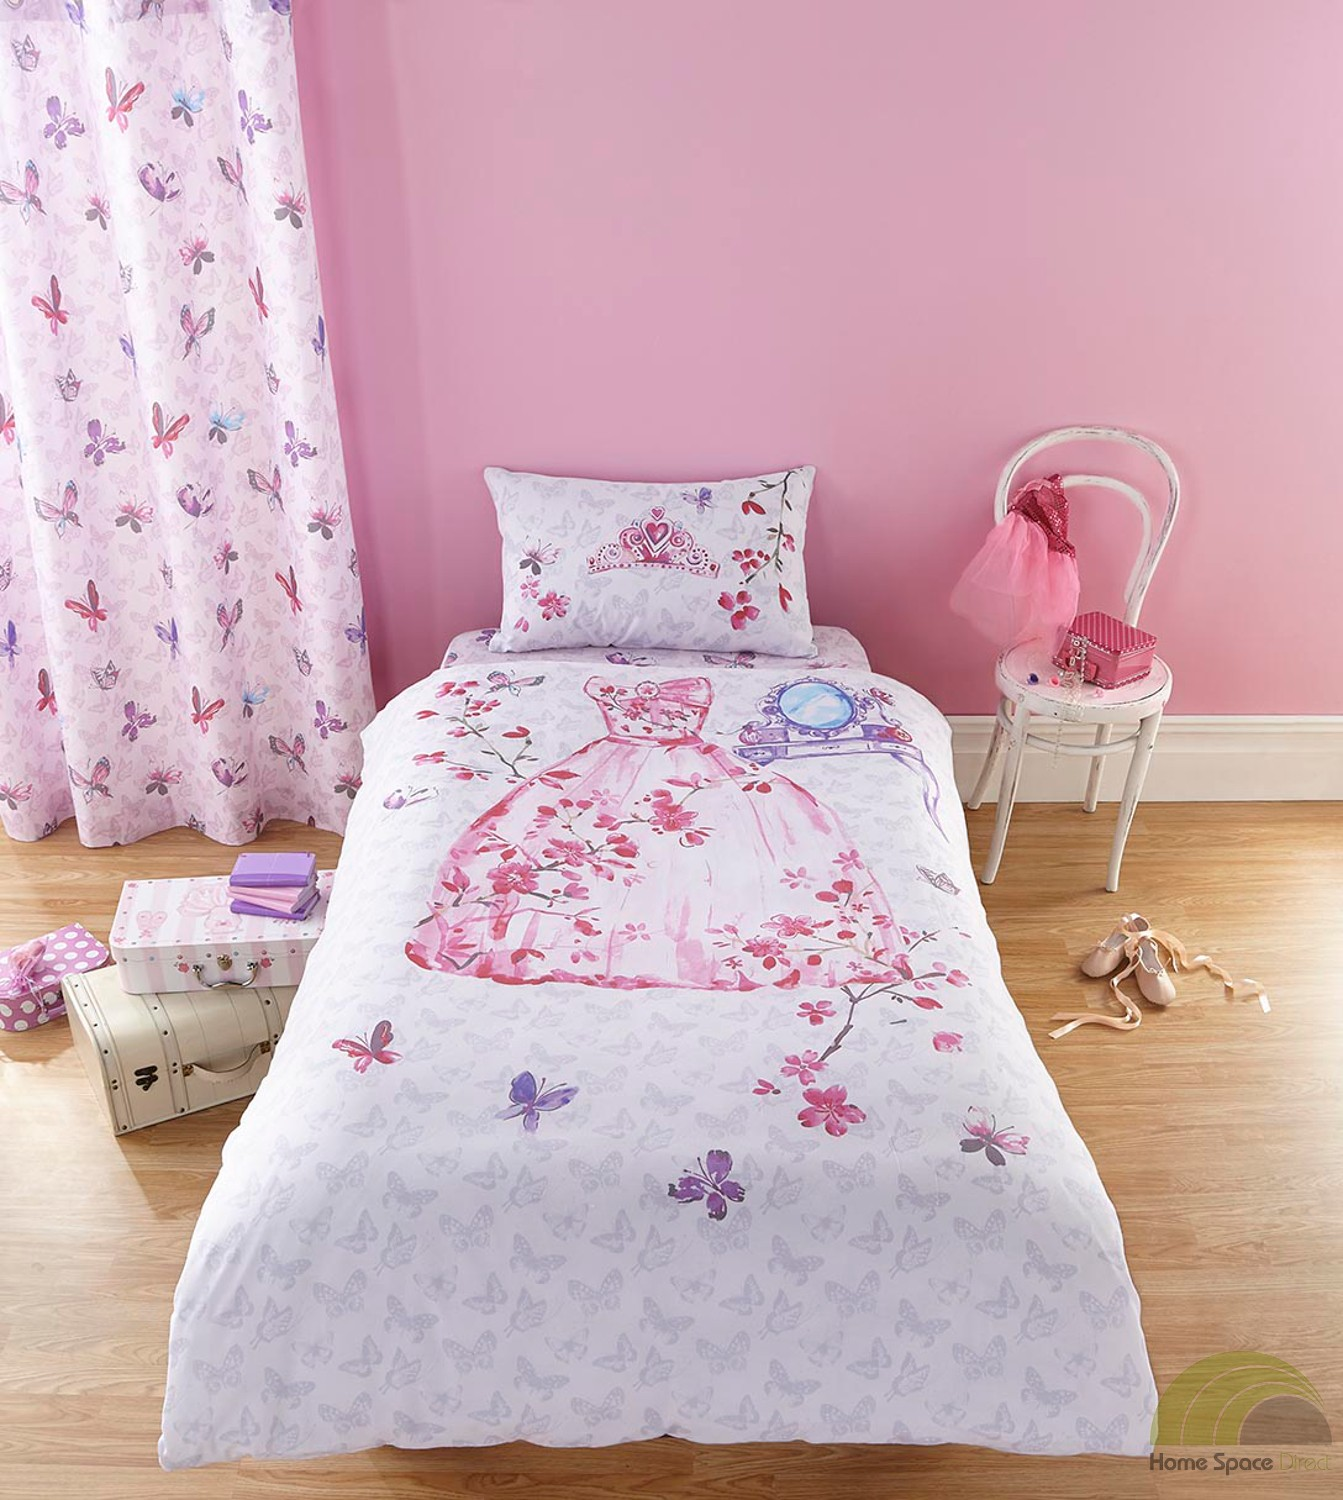 Girls Bedding Girls Princess Single Duvet Cover Bed Set Or Curtains Pink